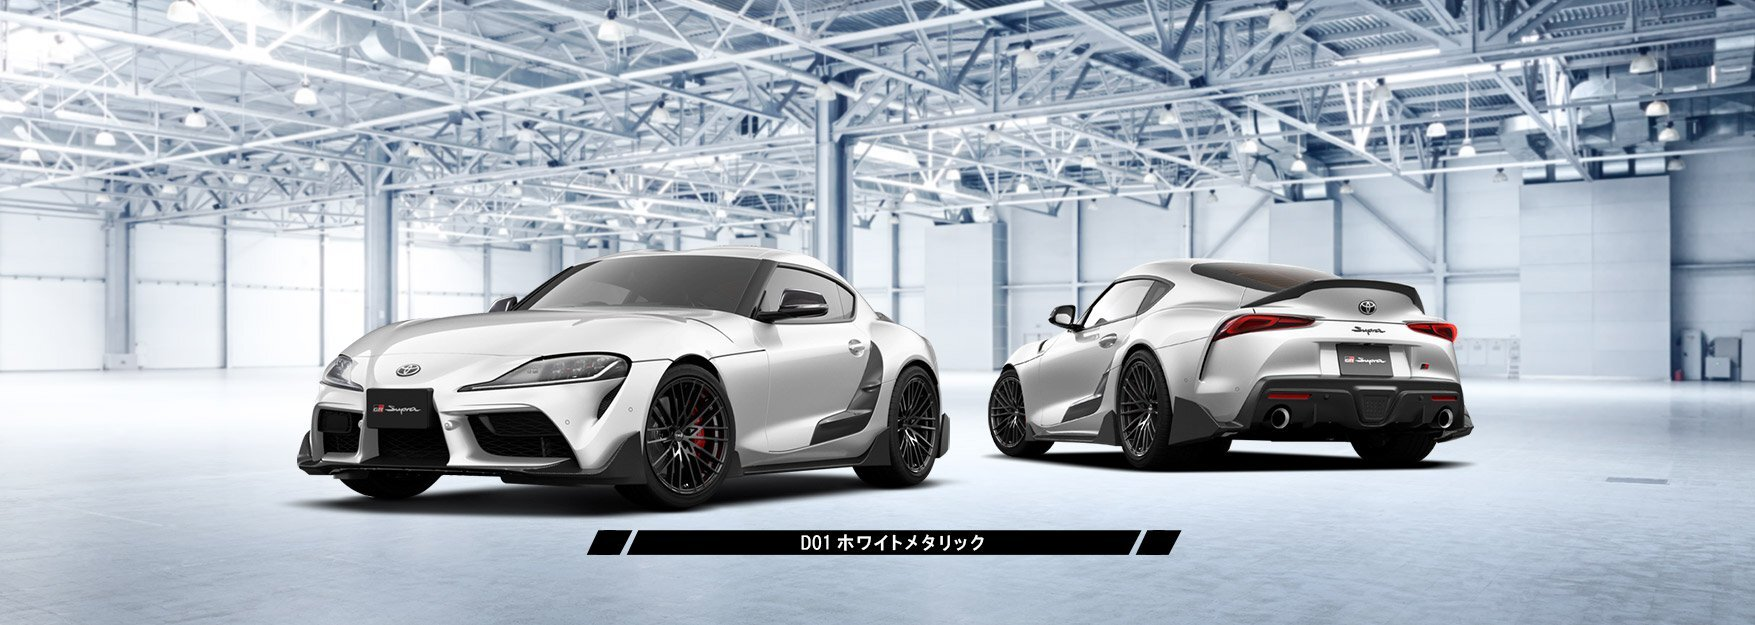 Toyota Supra TRD Performance Parts Photo Gallery | Autoblog